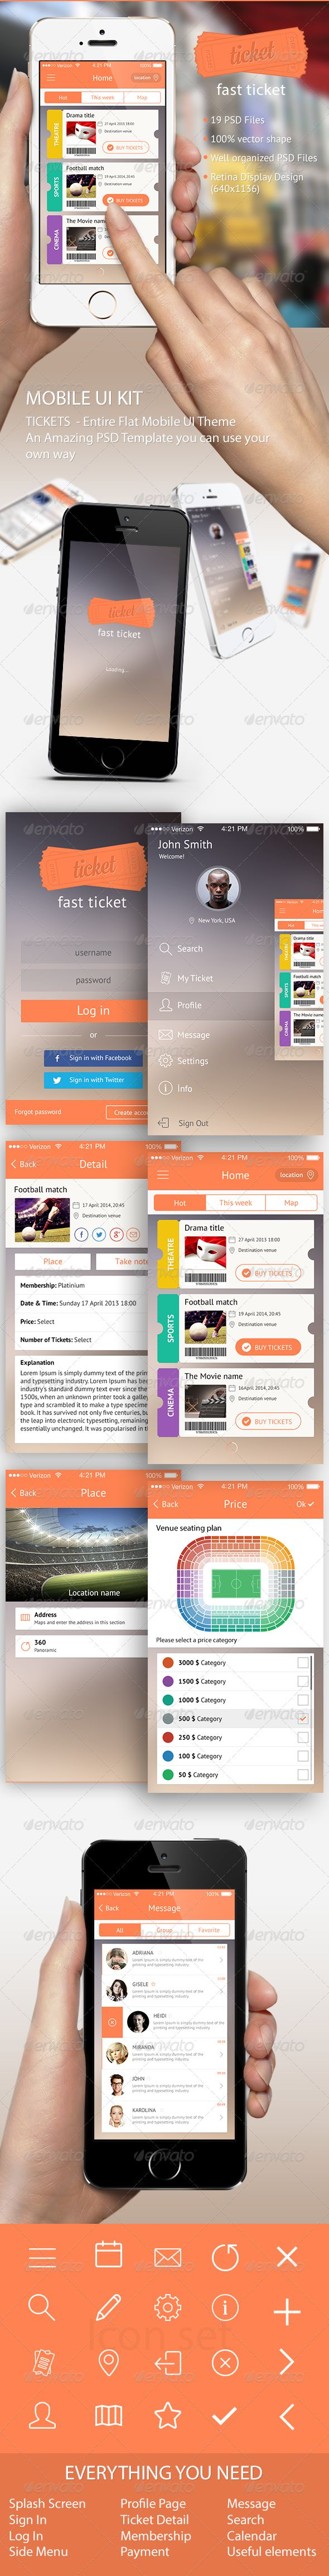 Ticket Mobile UI Template PSD. Download here: http://graphicriver.net/item/ticket-mobile-ui-template/6826262?ref=ksioks